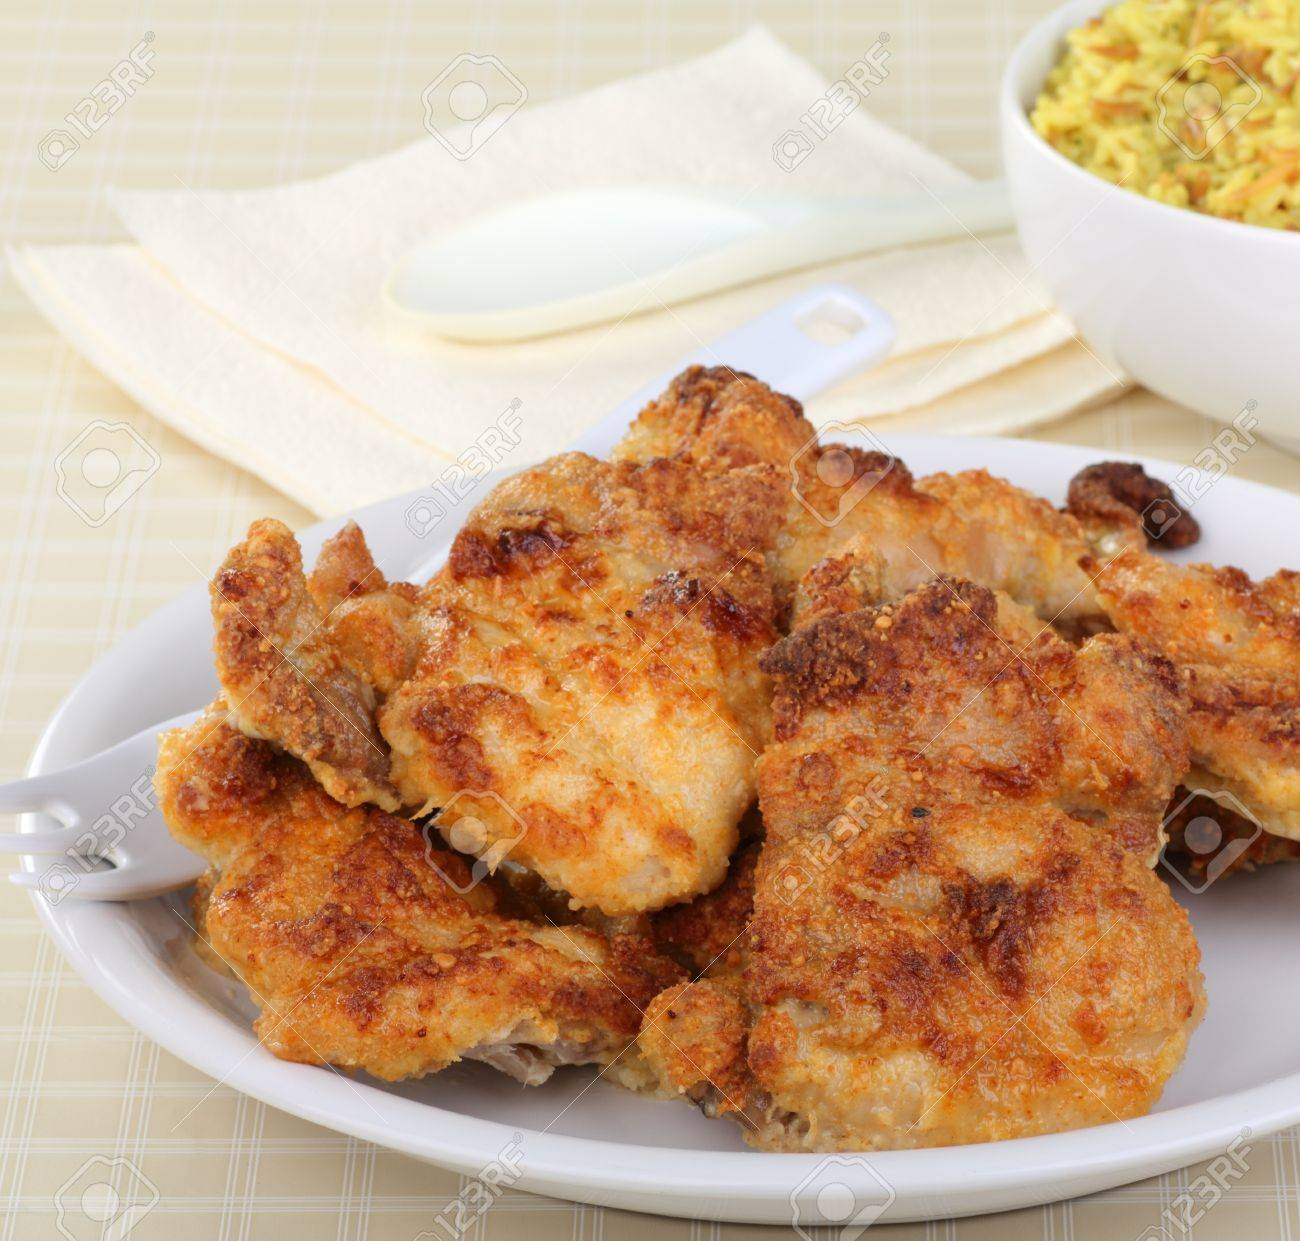 Baked breaded chicken thighs on a serving plate Stock Photo - 17038207